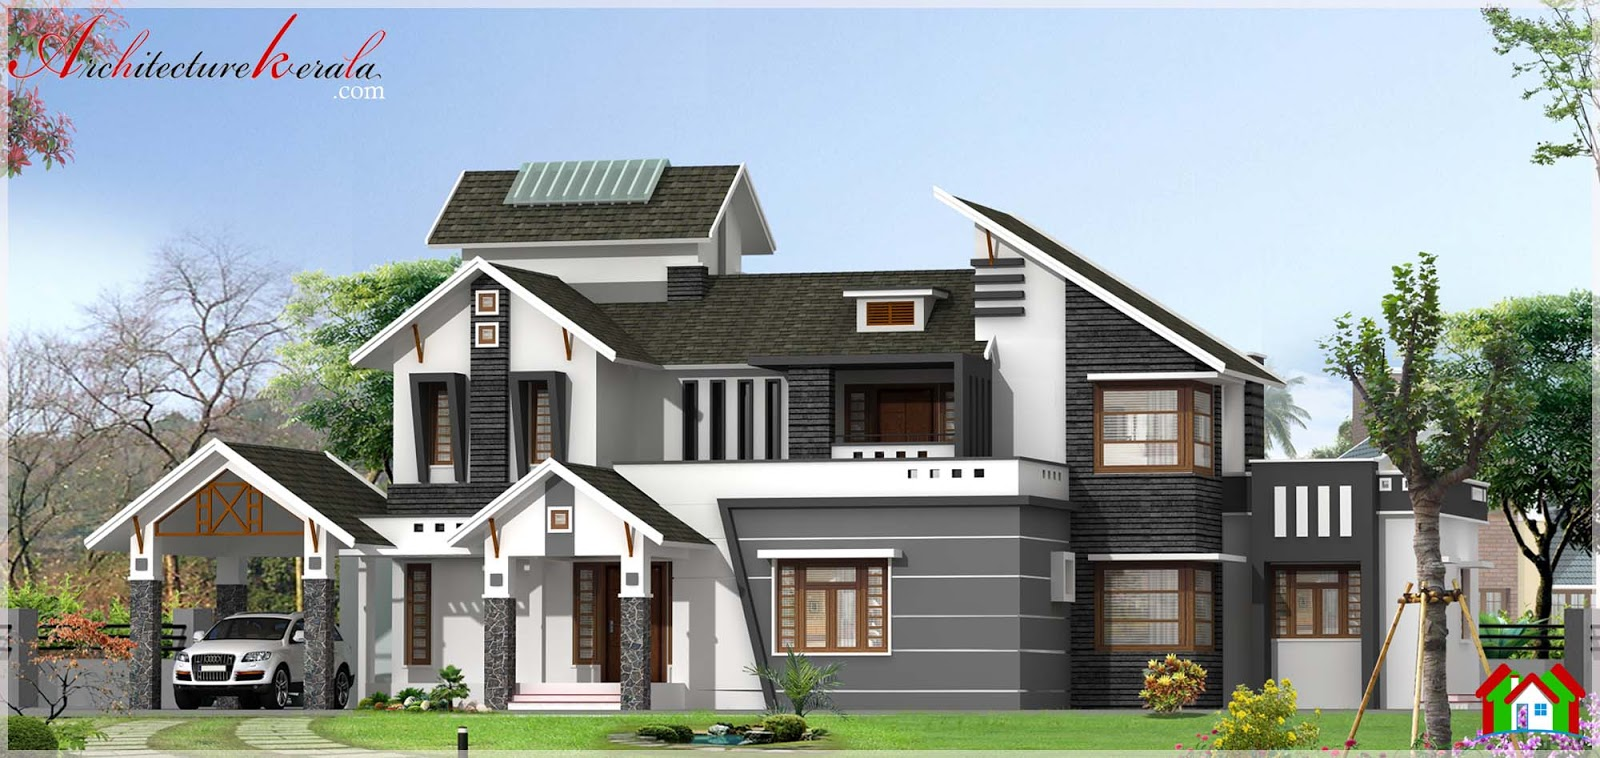 Modern house elevation in 3000 square feet architecture for 3000 sq ft house cost